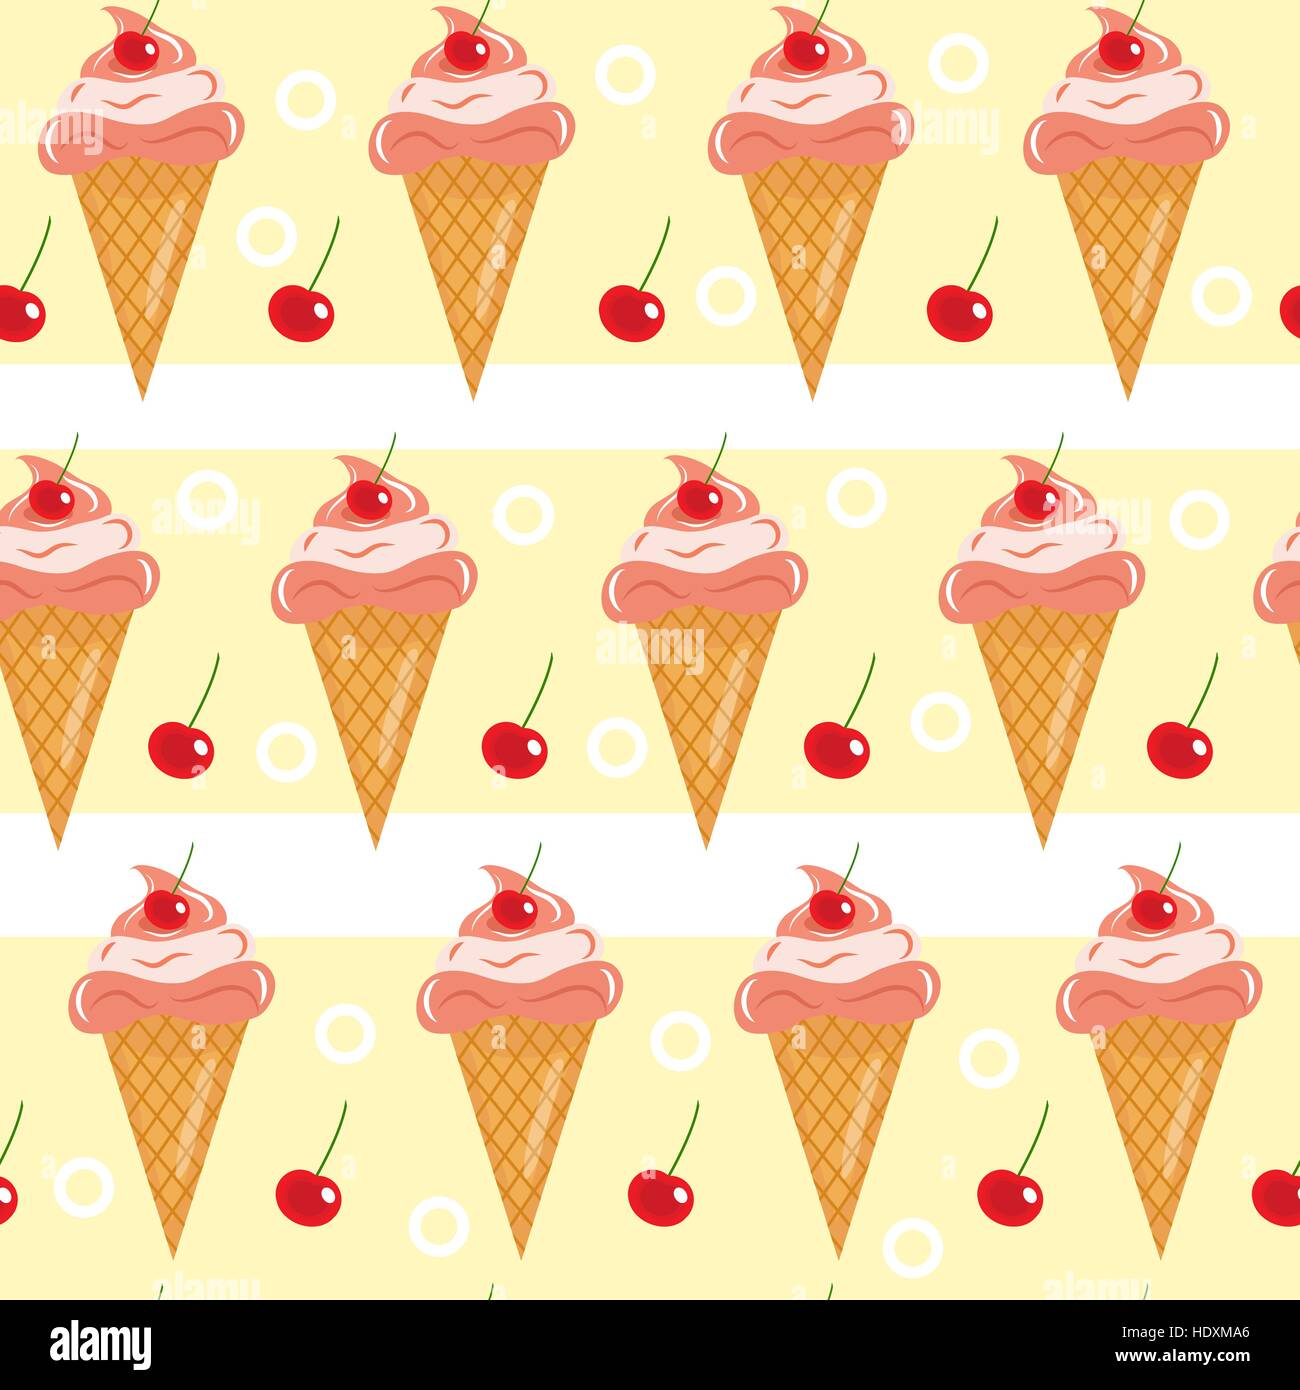 Sweet Ice Cream Flat Colorful Seamless Pattern Vector: Sugar Cone Stock Vector Images